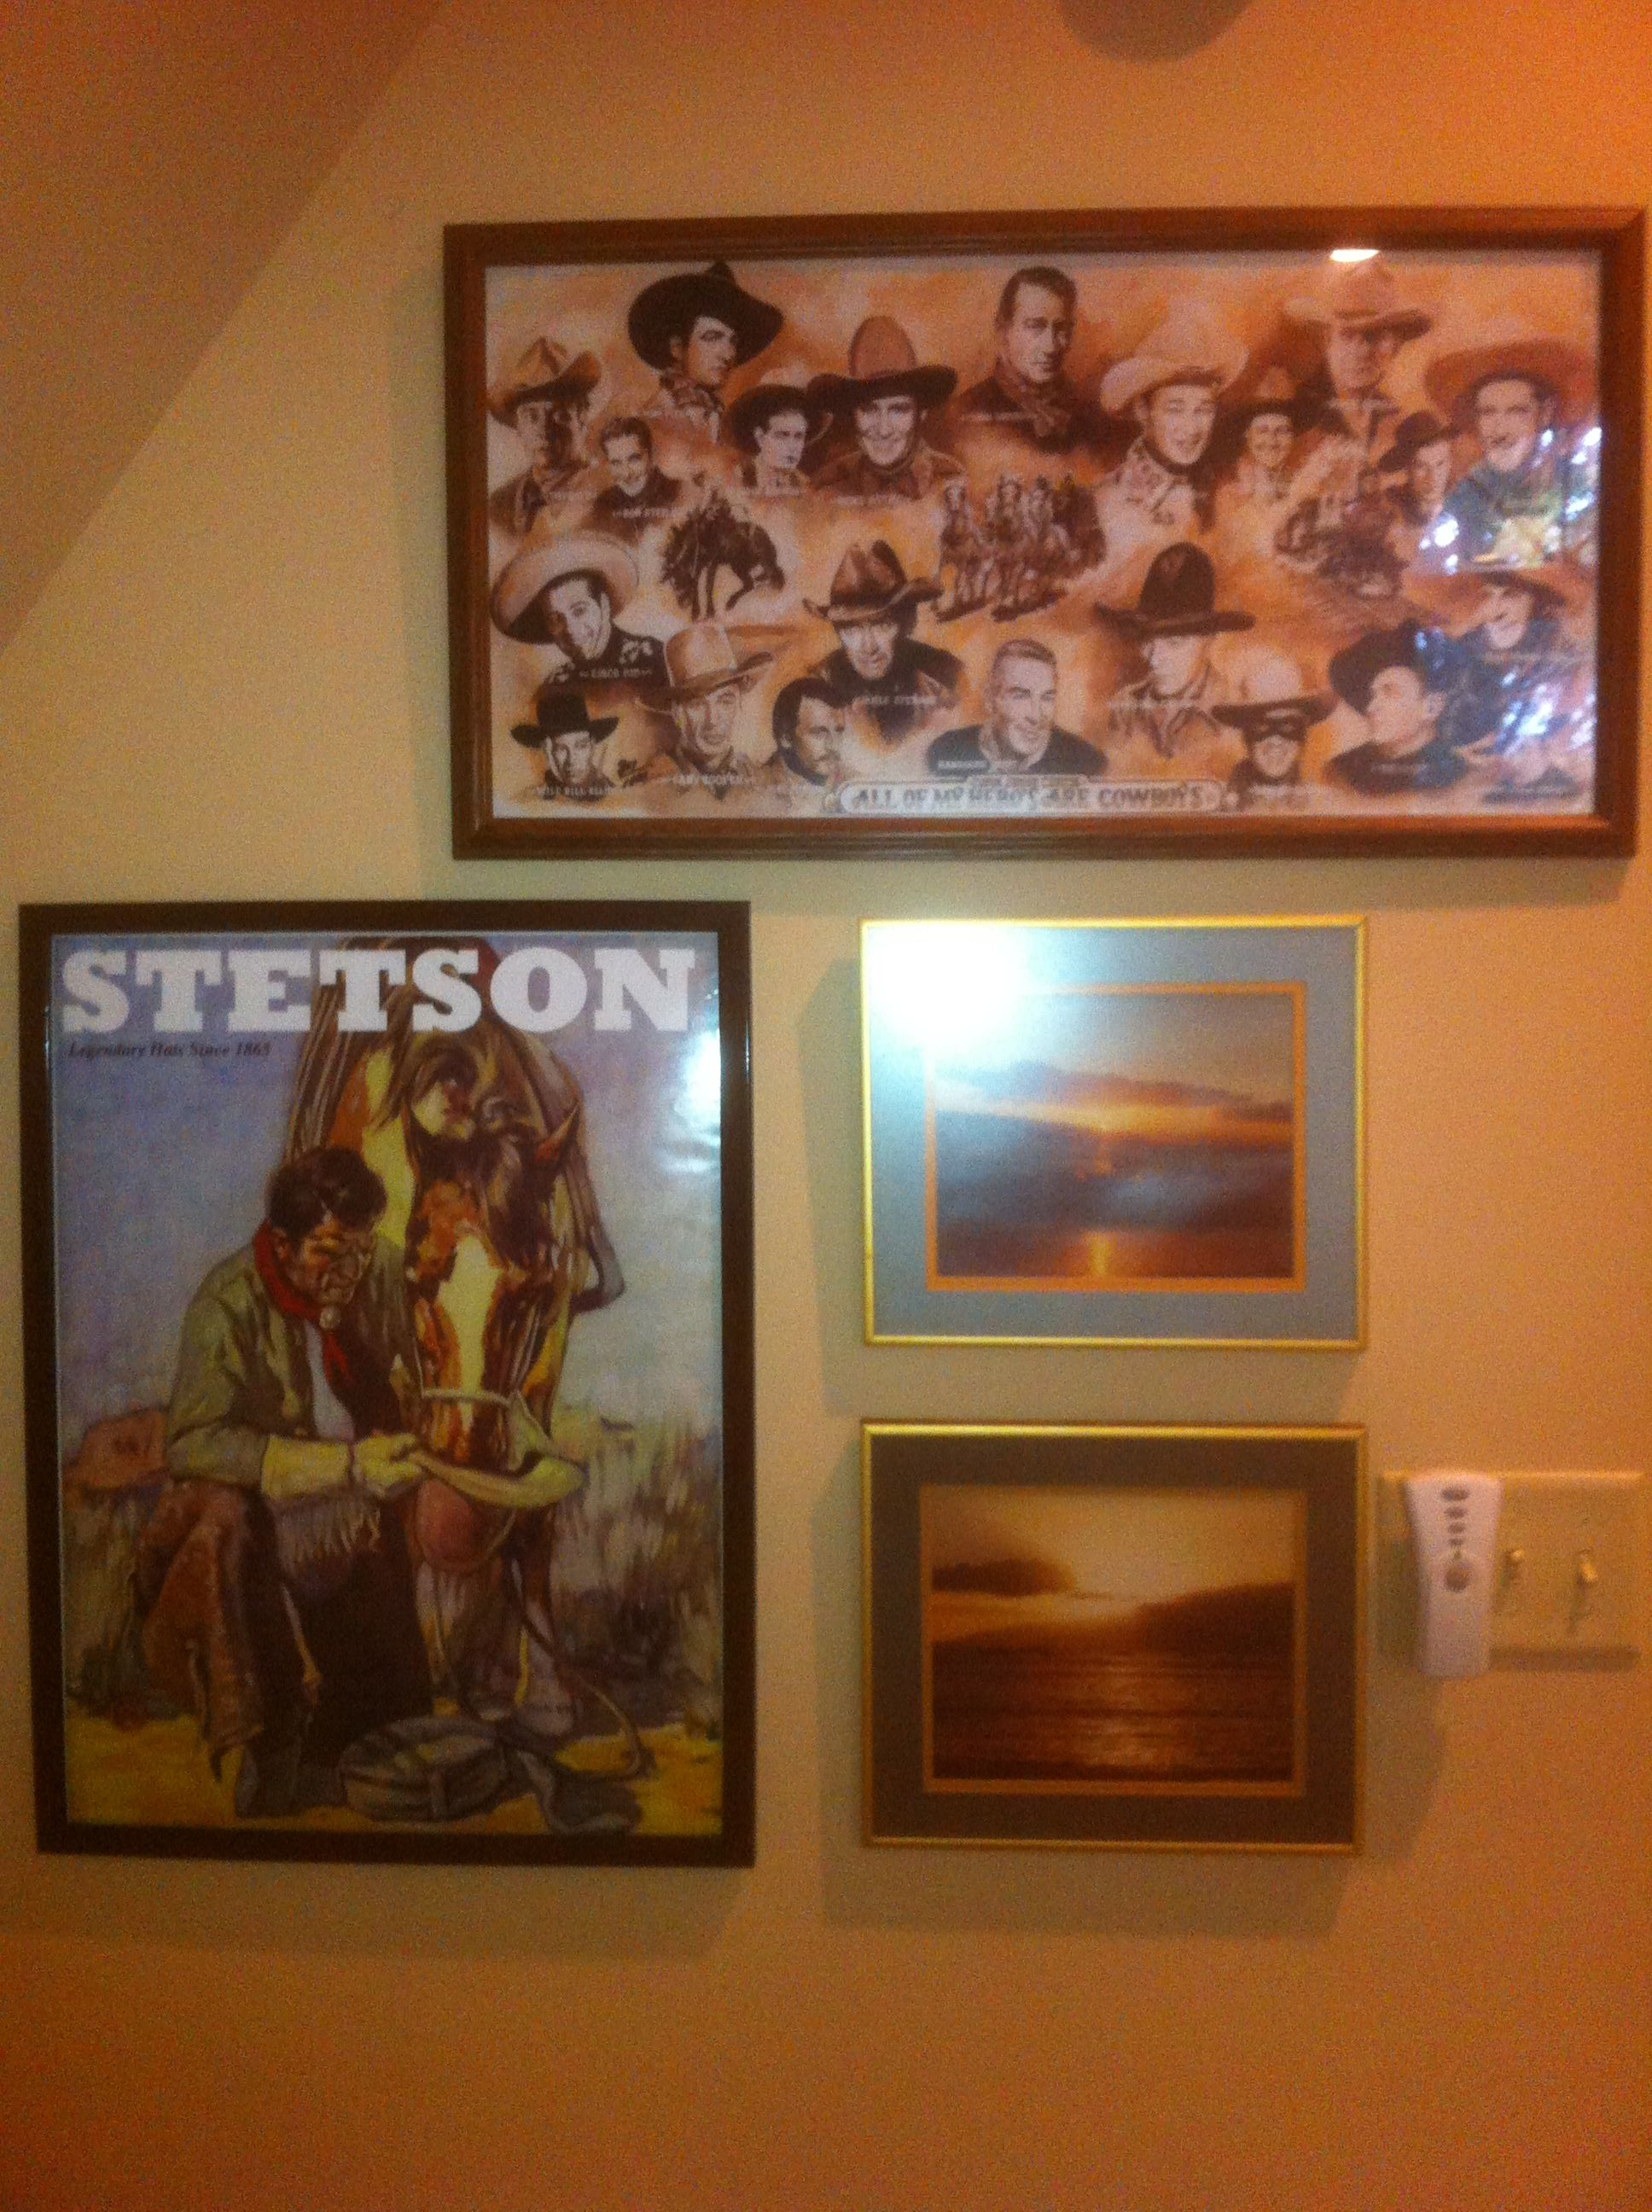 """""""All of My Heros Are Cowboys"""" + Stetson Poster + 2 photos from Hawaii (ca 1975)"""